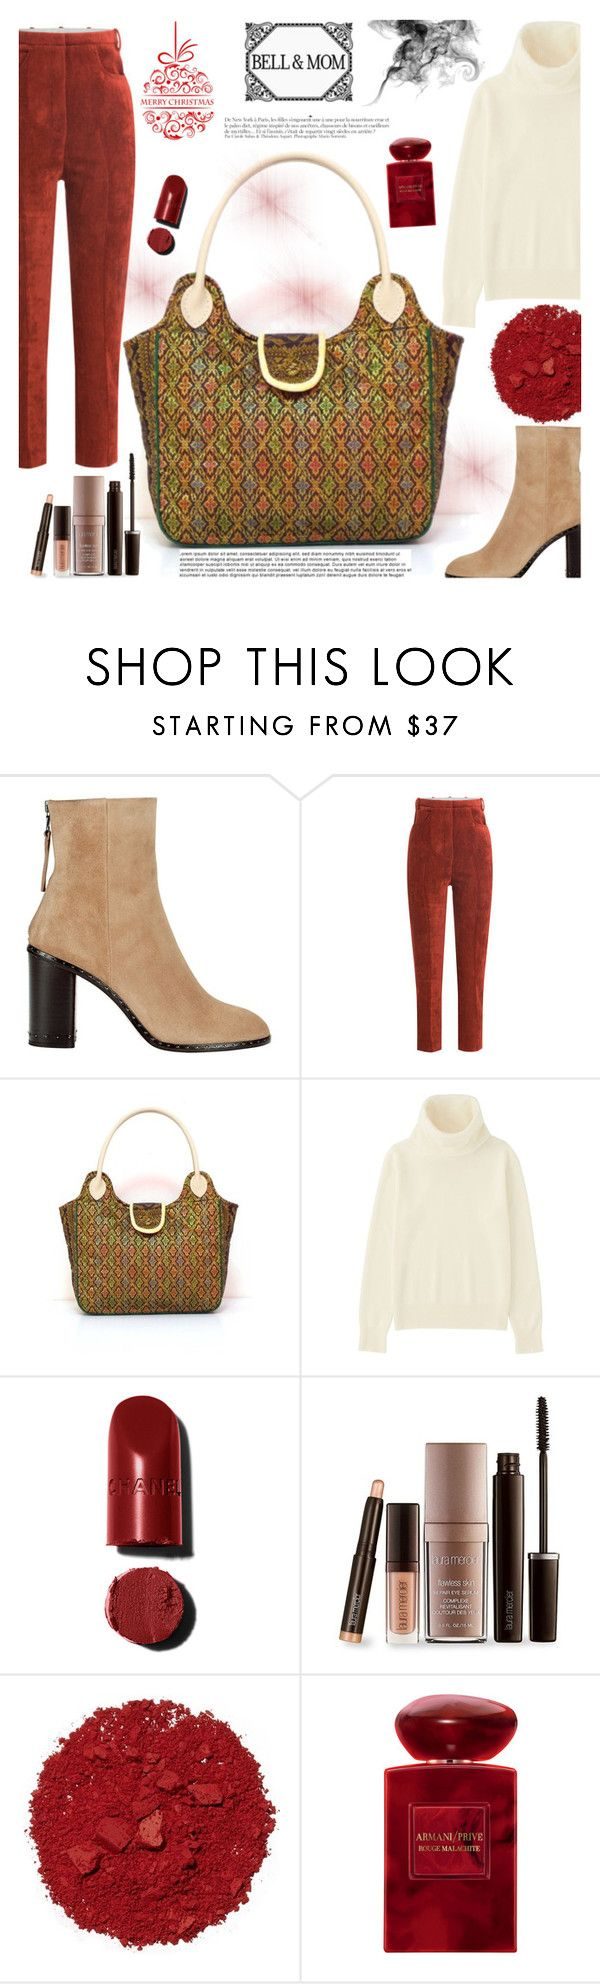 """BELL&MOM"" by gaby-mil ❤ liked on Polyvore featuring rag & bone, Golden Goose, Uniqlo, Anja, Laura Mercier, Illamasqua, Giorgio Armani, handbag, handmade and bellandmom"